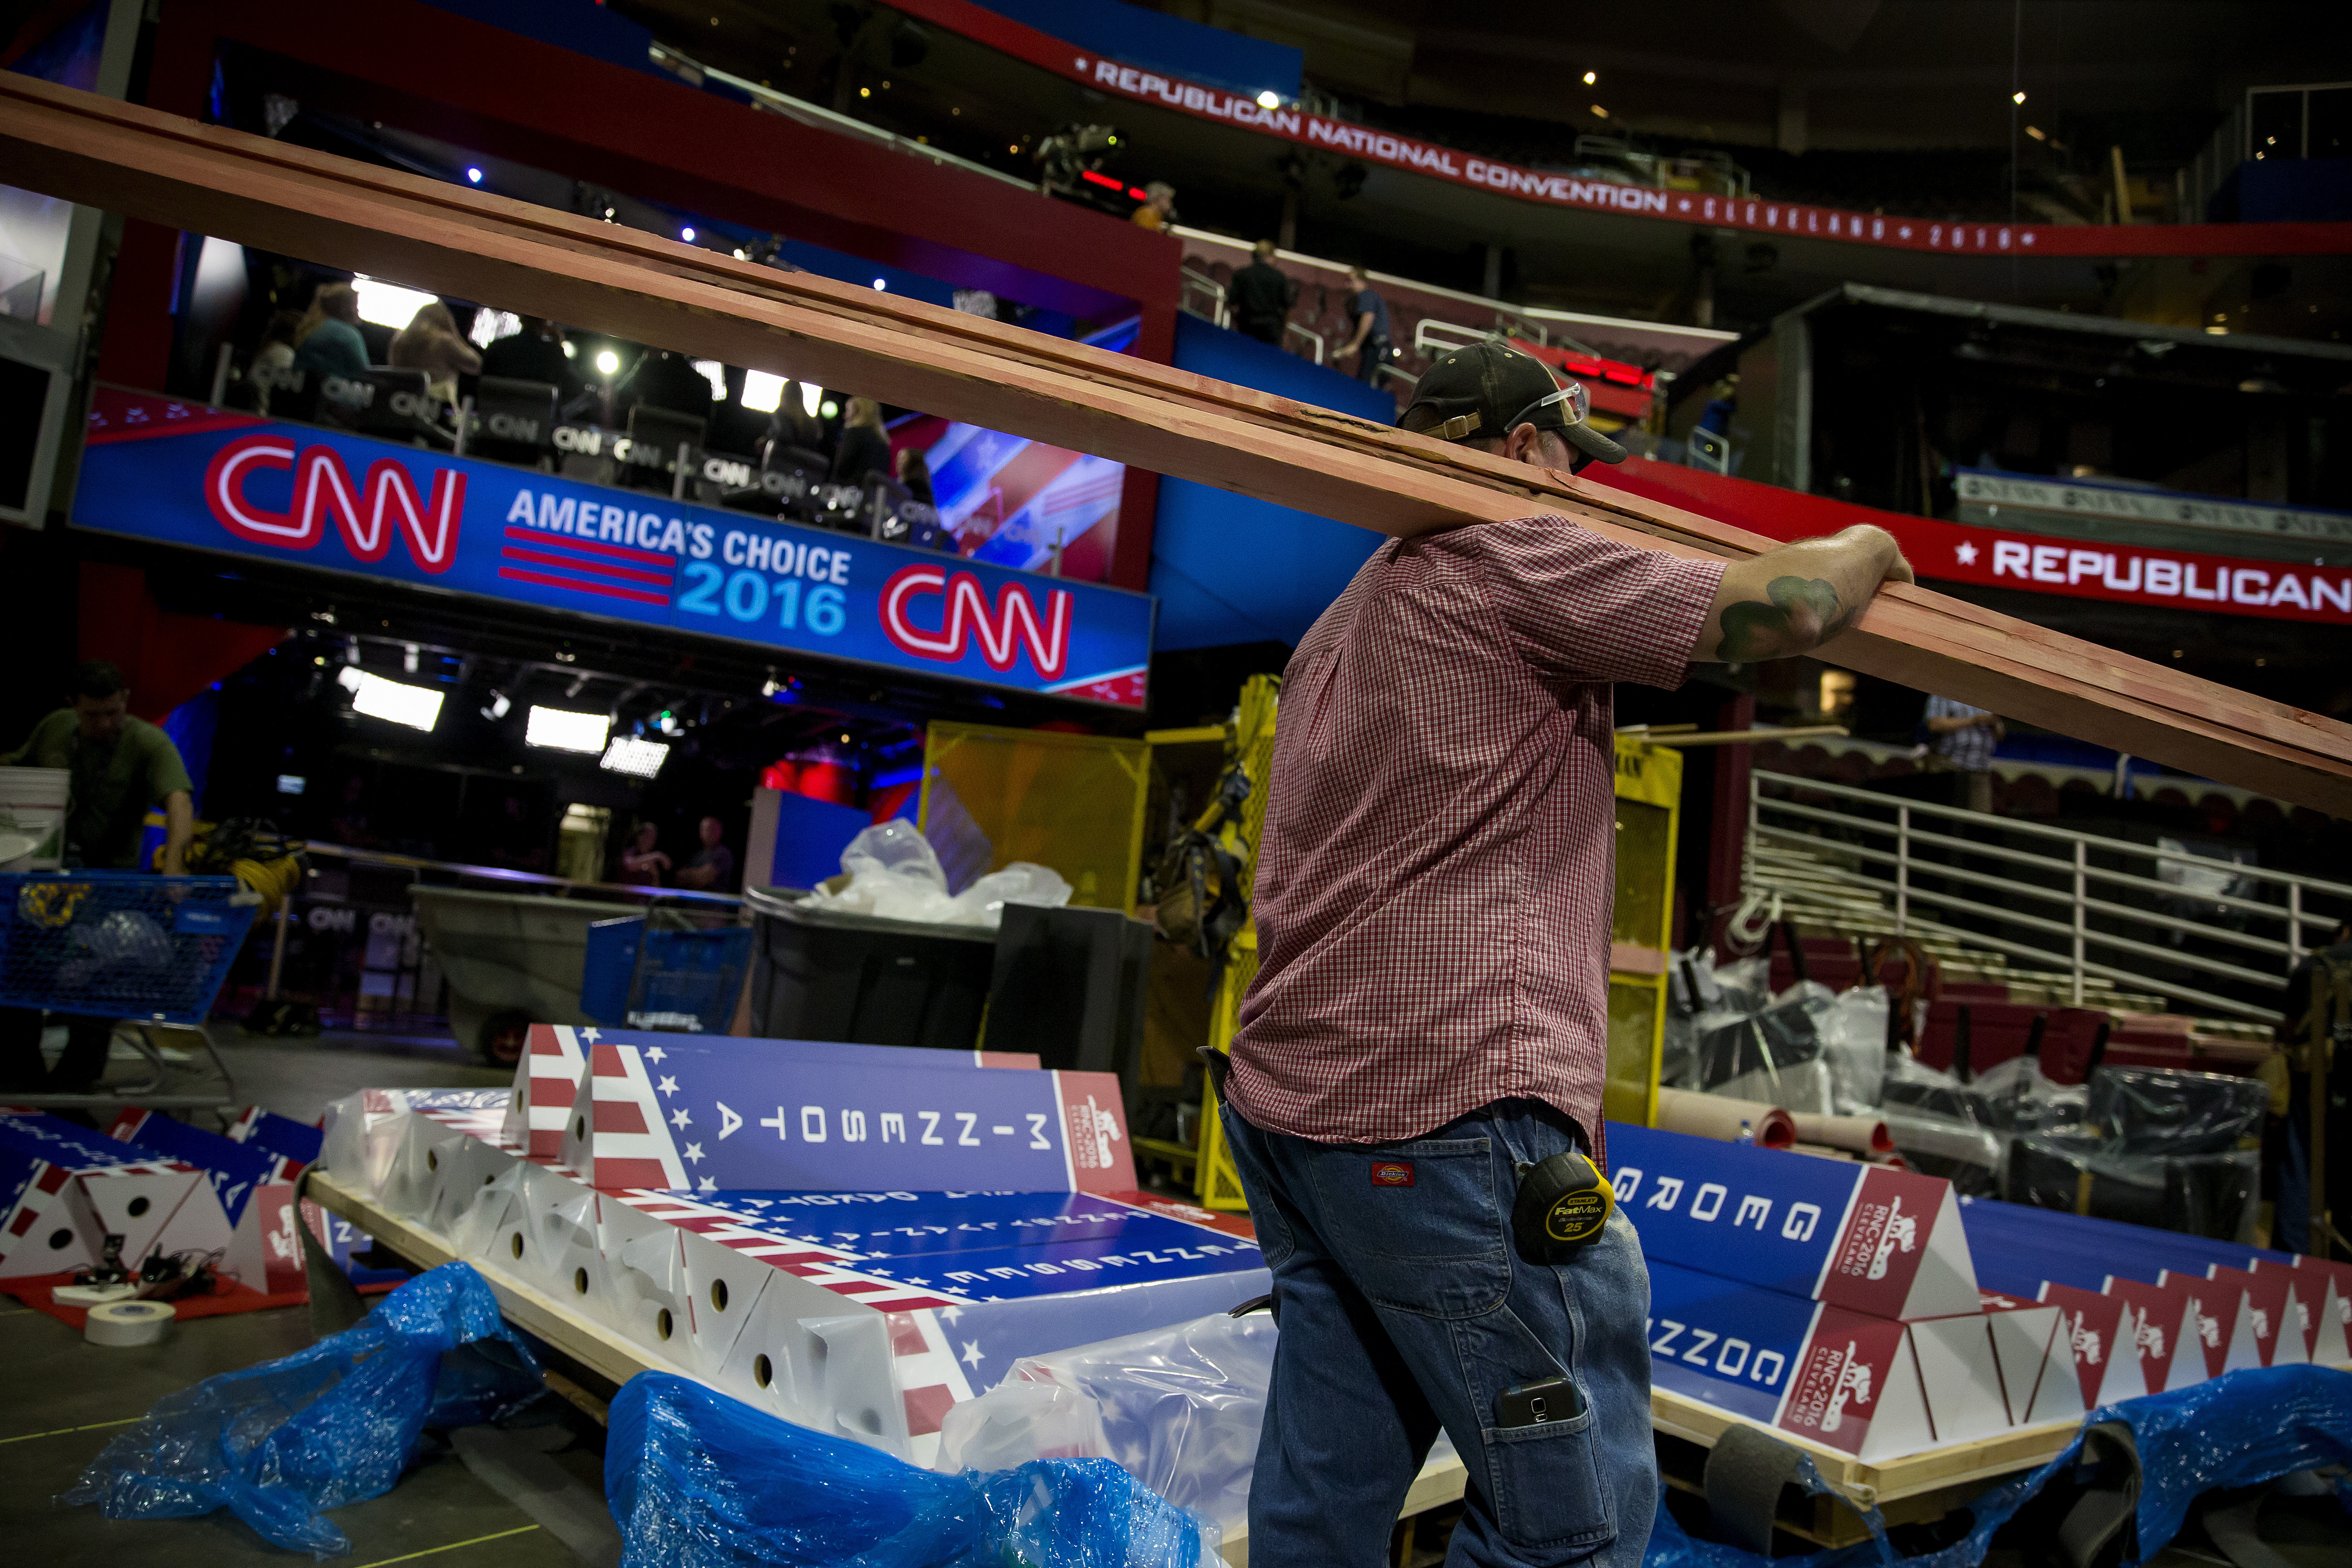 Preparations are made for the Republican National Convention at the Quicken Loans Arena in Cleveland, Ohio. (Eric Thayer/New York Times)